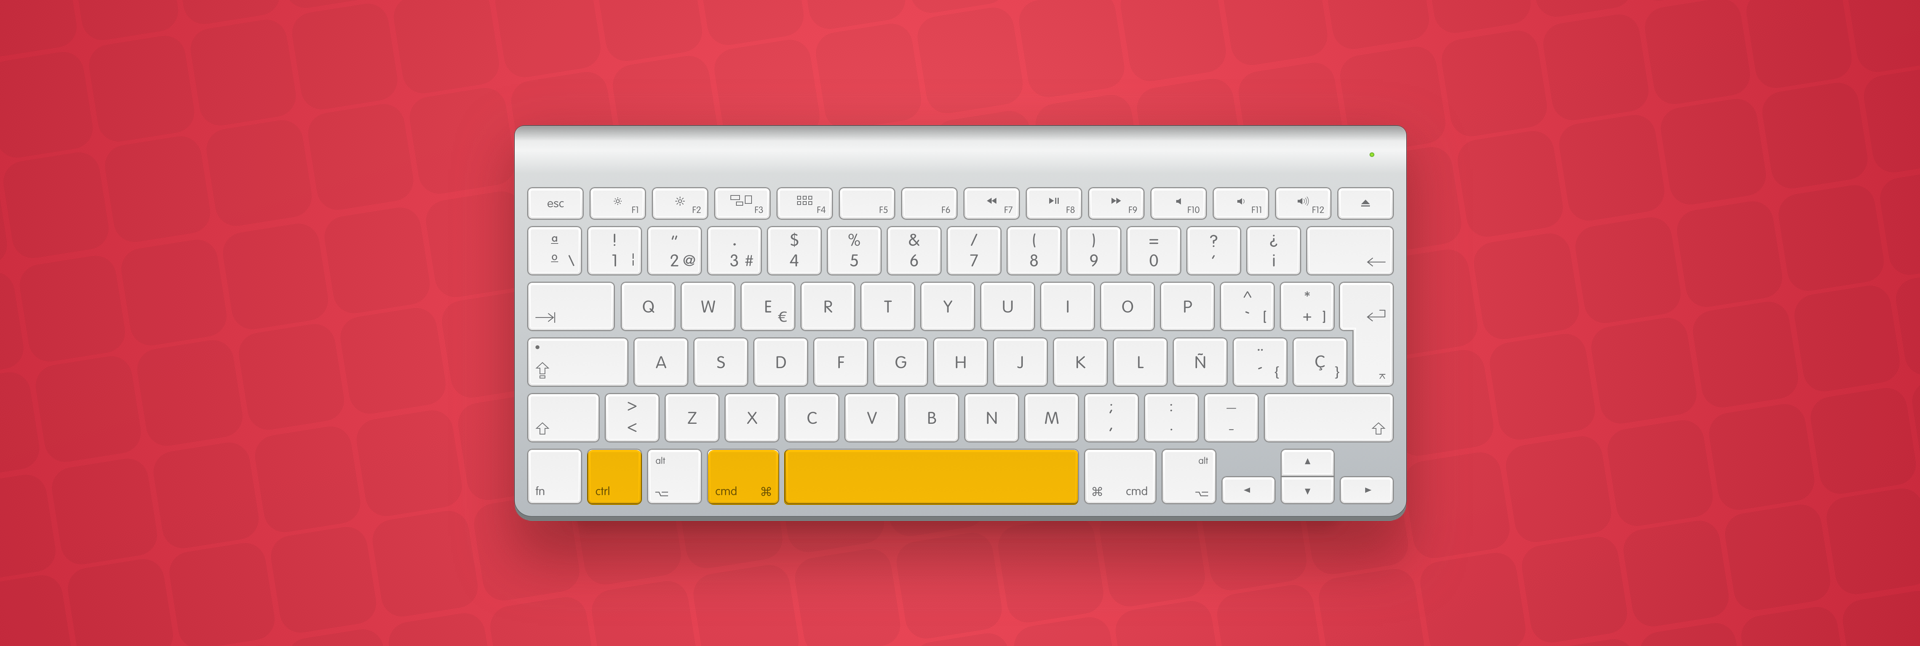 How to do a trademark on your keyboard light up with music